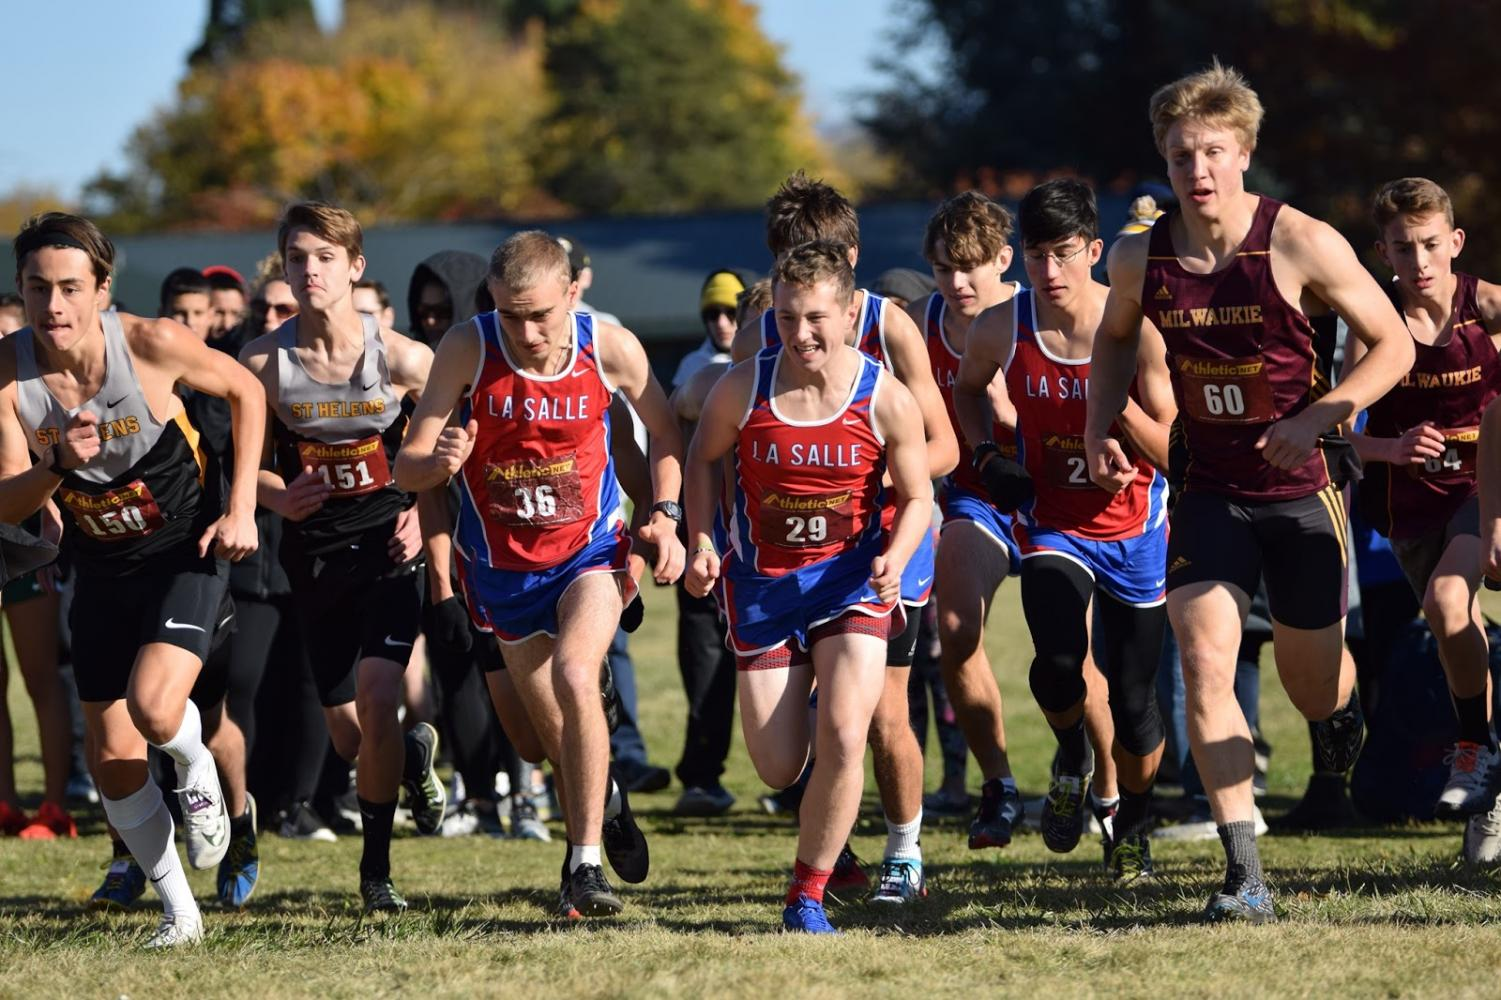 The boys varsity cross country team placed 4th at districts on Wednesday Oct. 31.